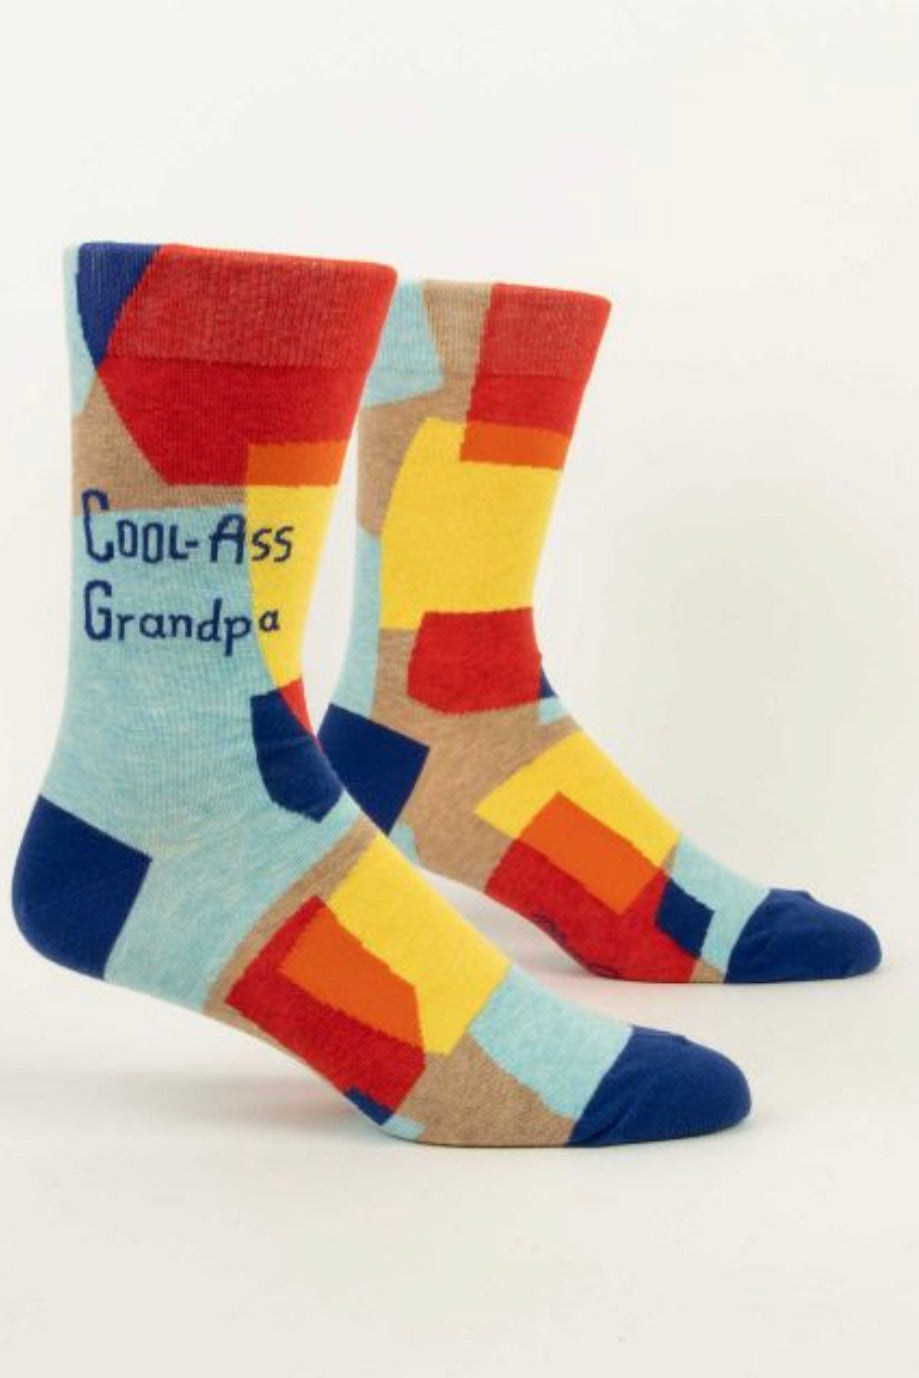 Blue Q Cool-Ass Grandpa Men's Socks